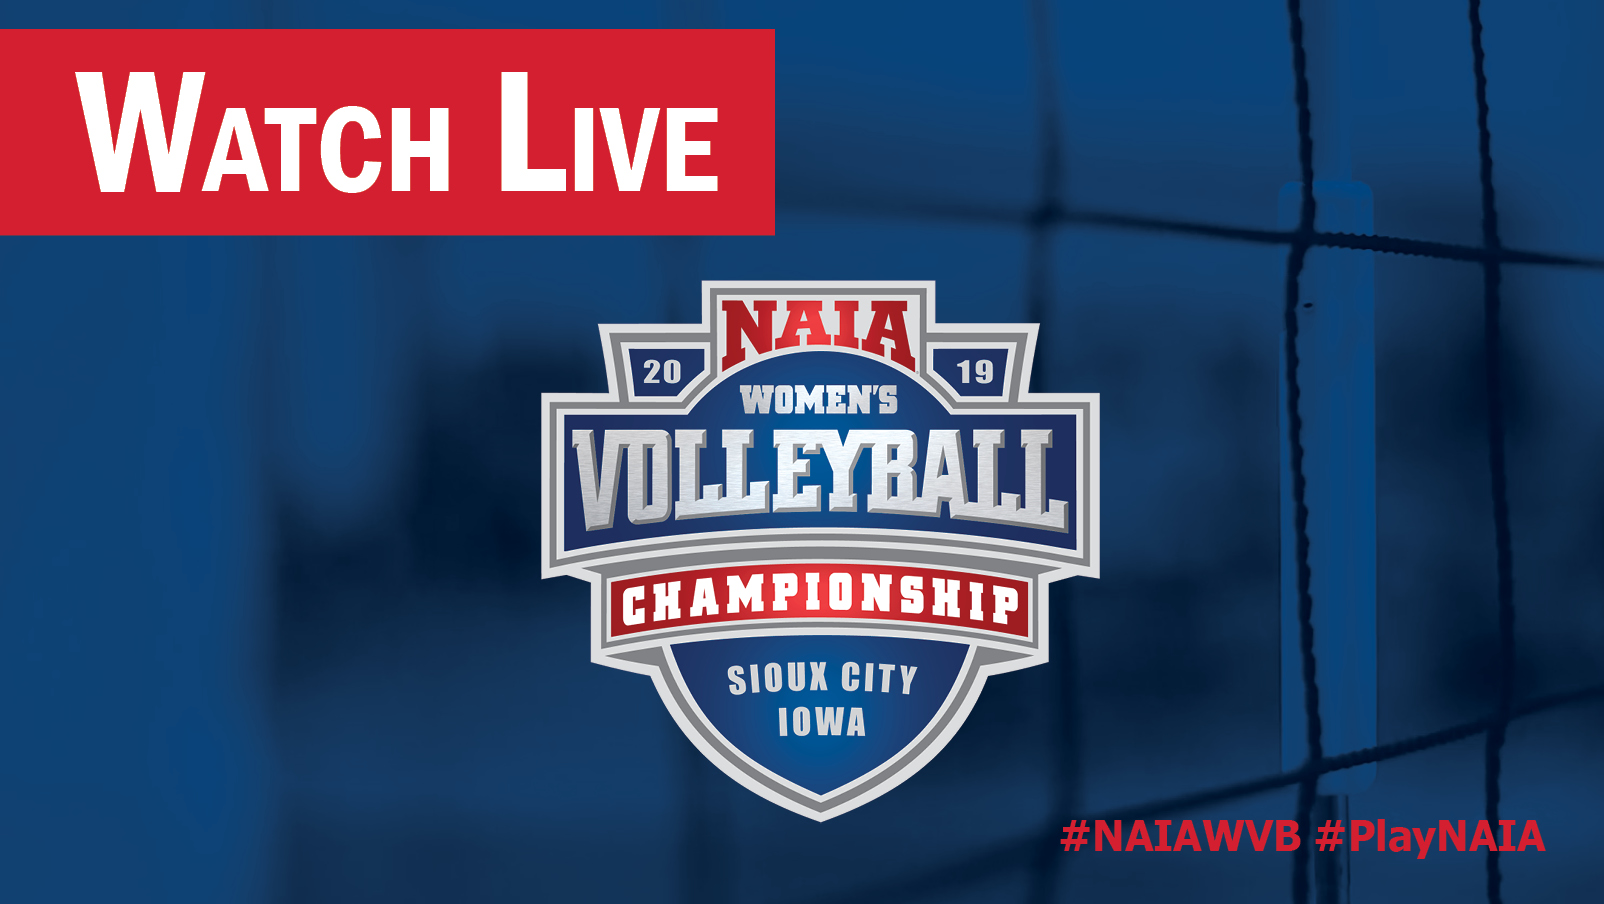 NAIA Women's Volleyball